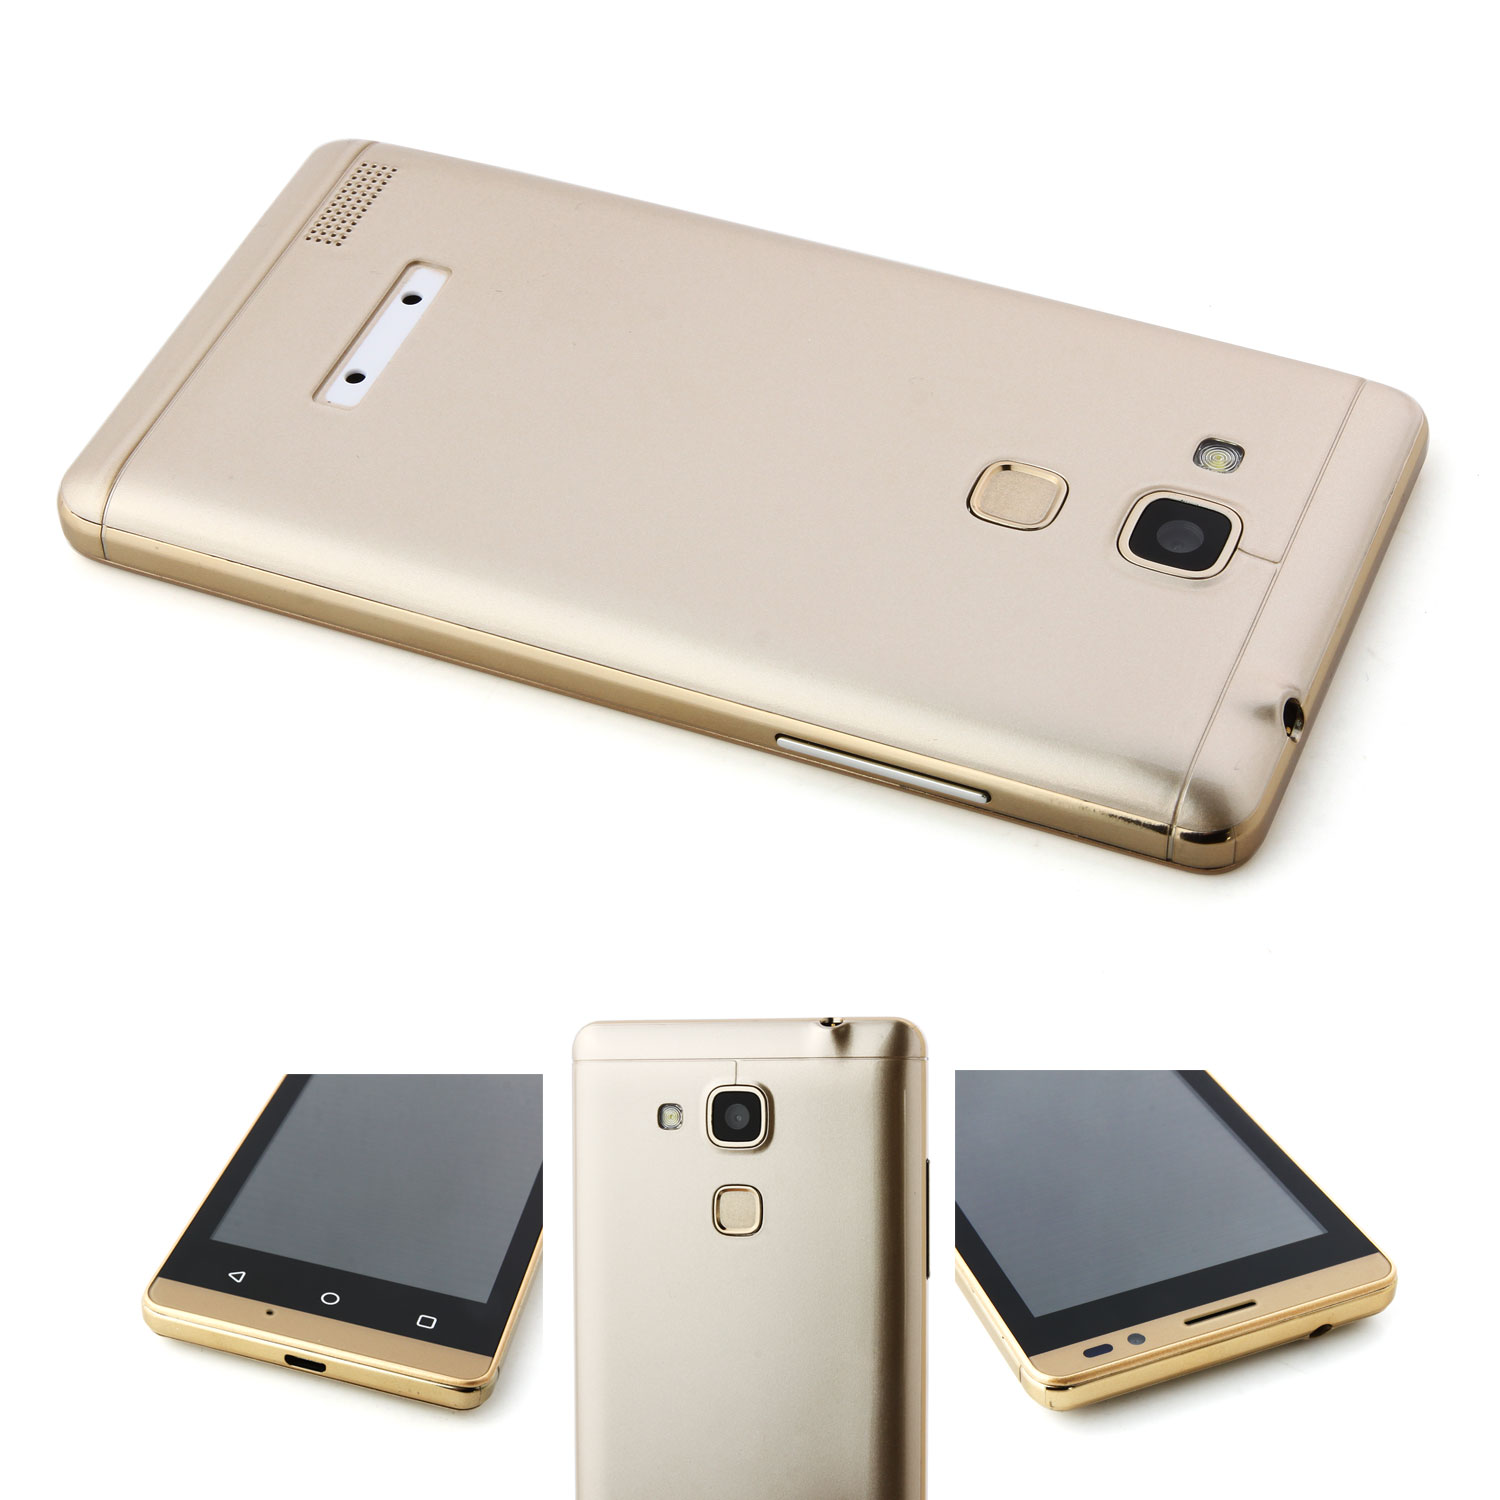 Tengda Q5 Smartphone Android 4.4 MTK6572W 4.0 Inch 3G Golden